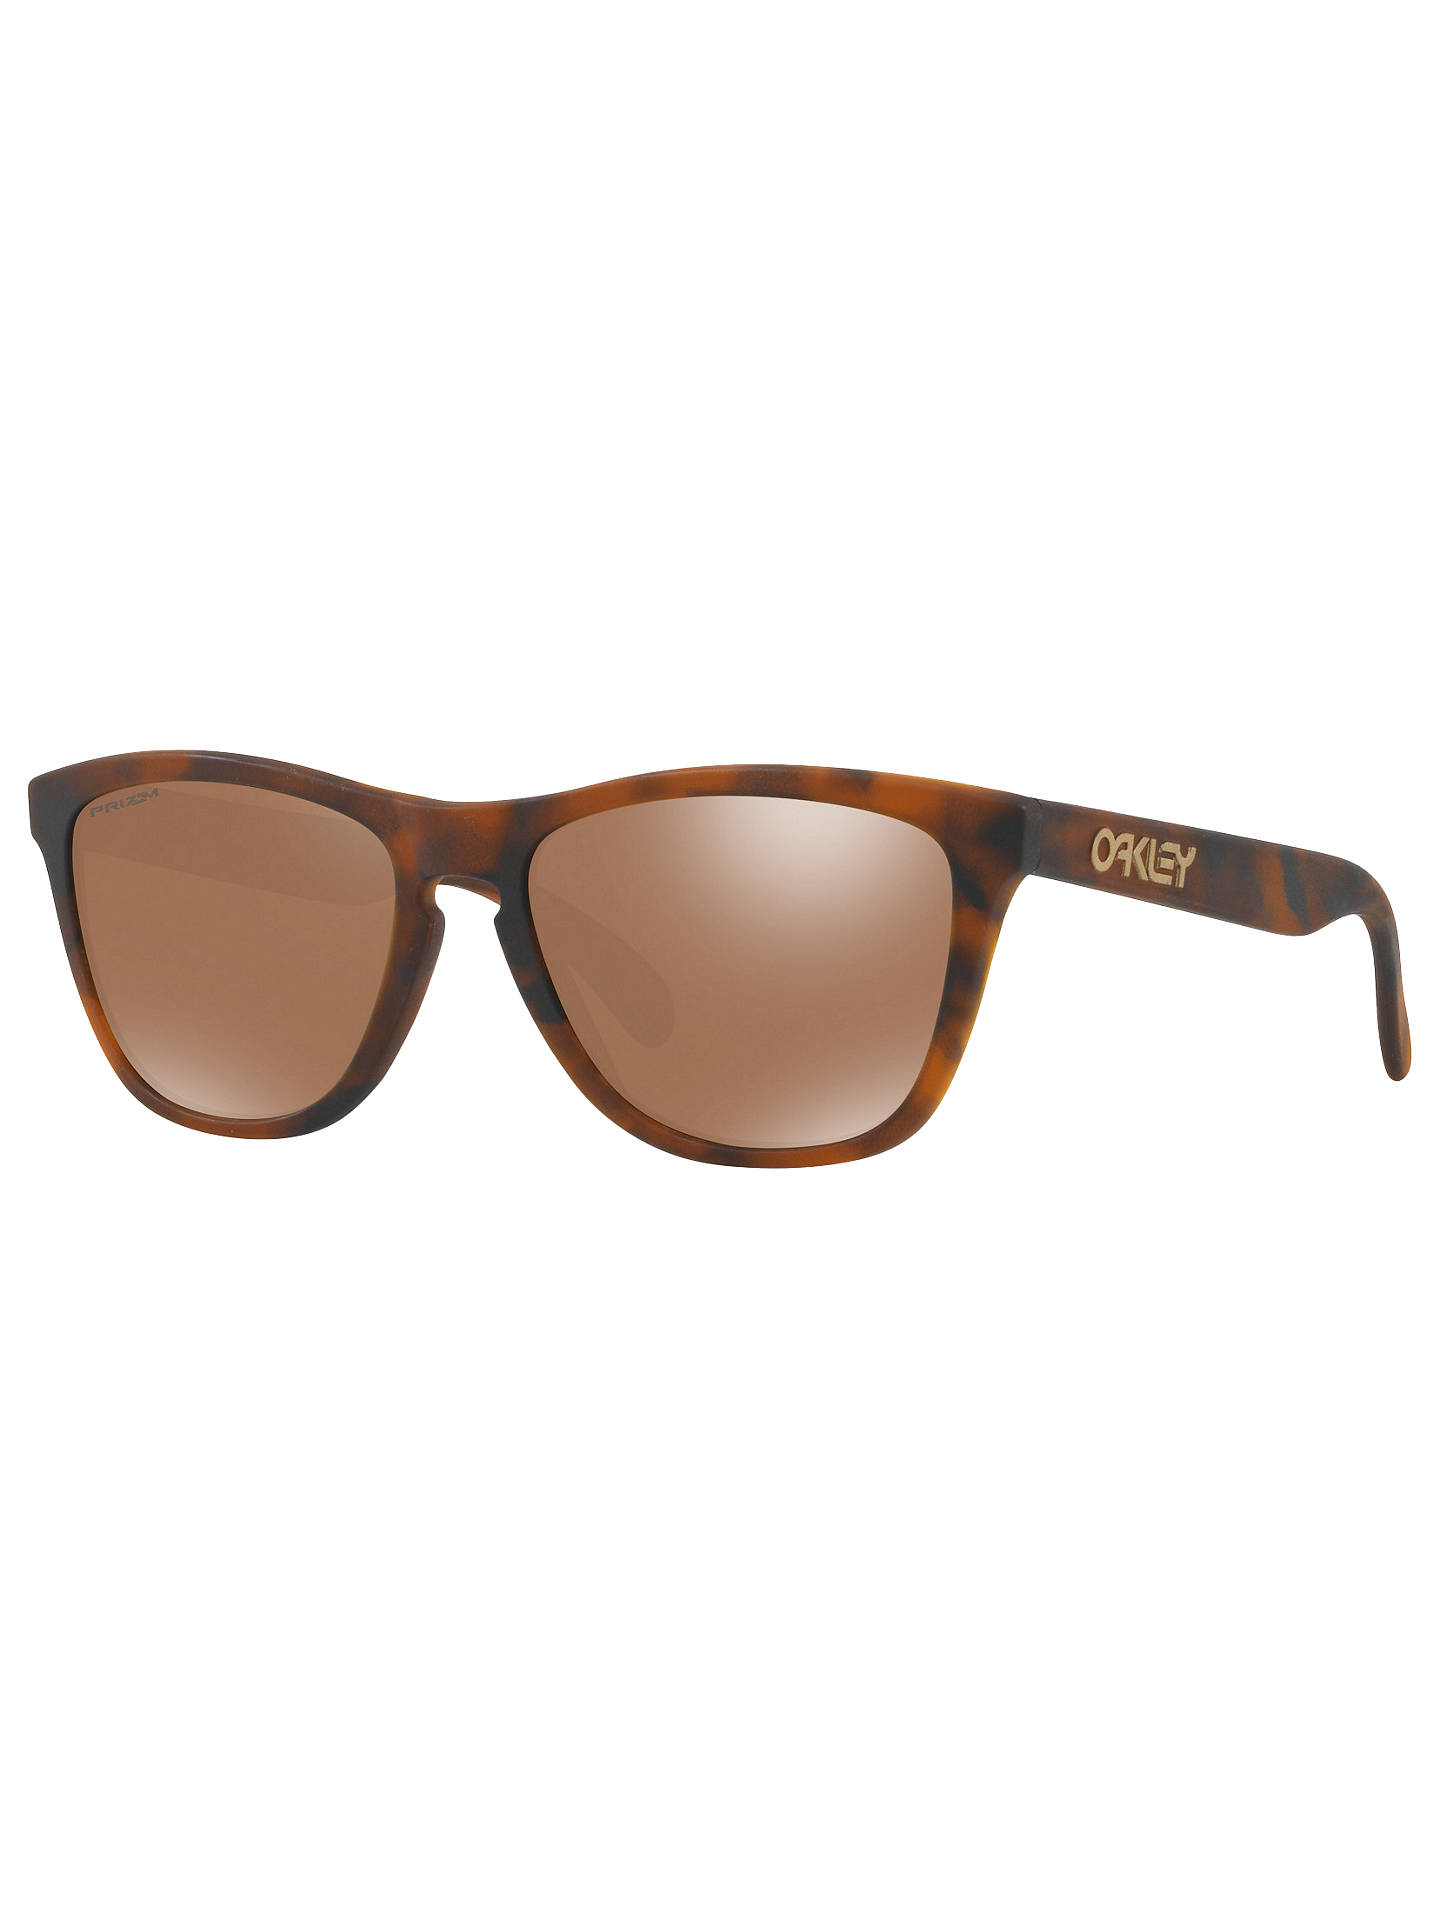 052239f4f Buy Oakley OO9013 Frogskins Square Sunglasses, Tortoise/Mirror Brown Online  at johnlewis.com ...